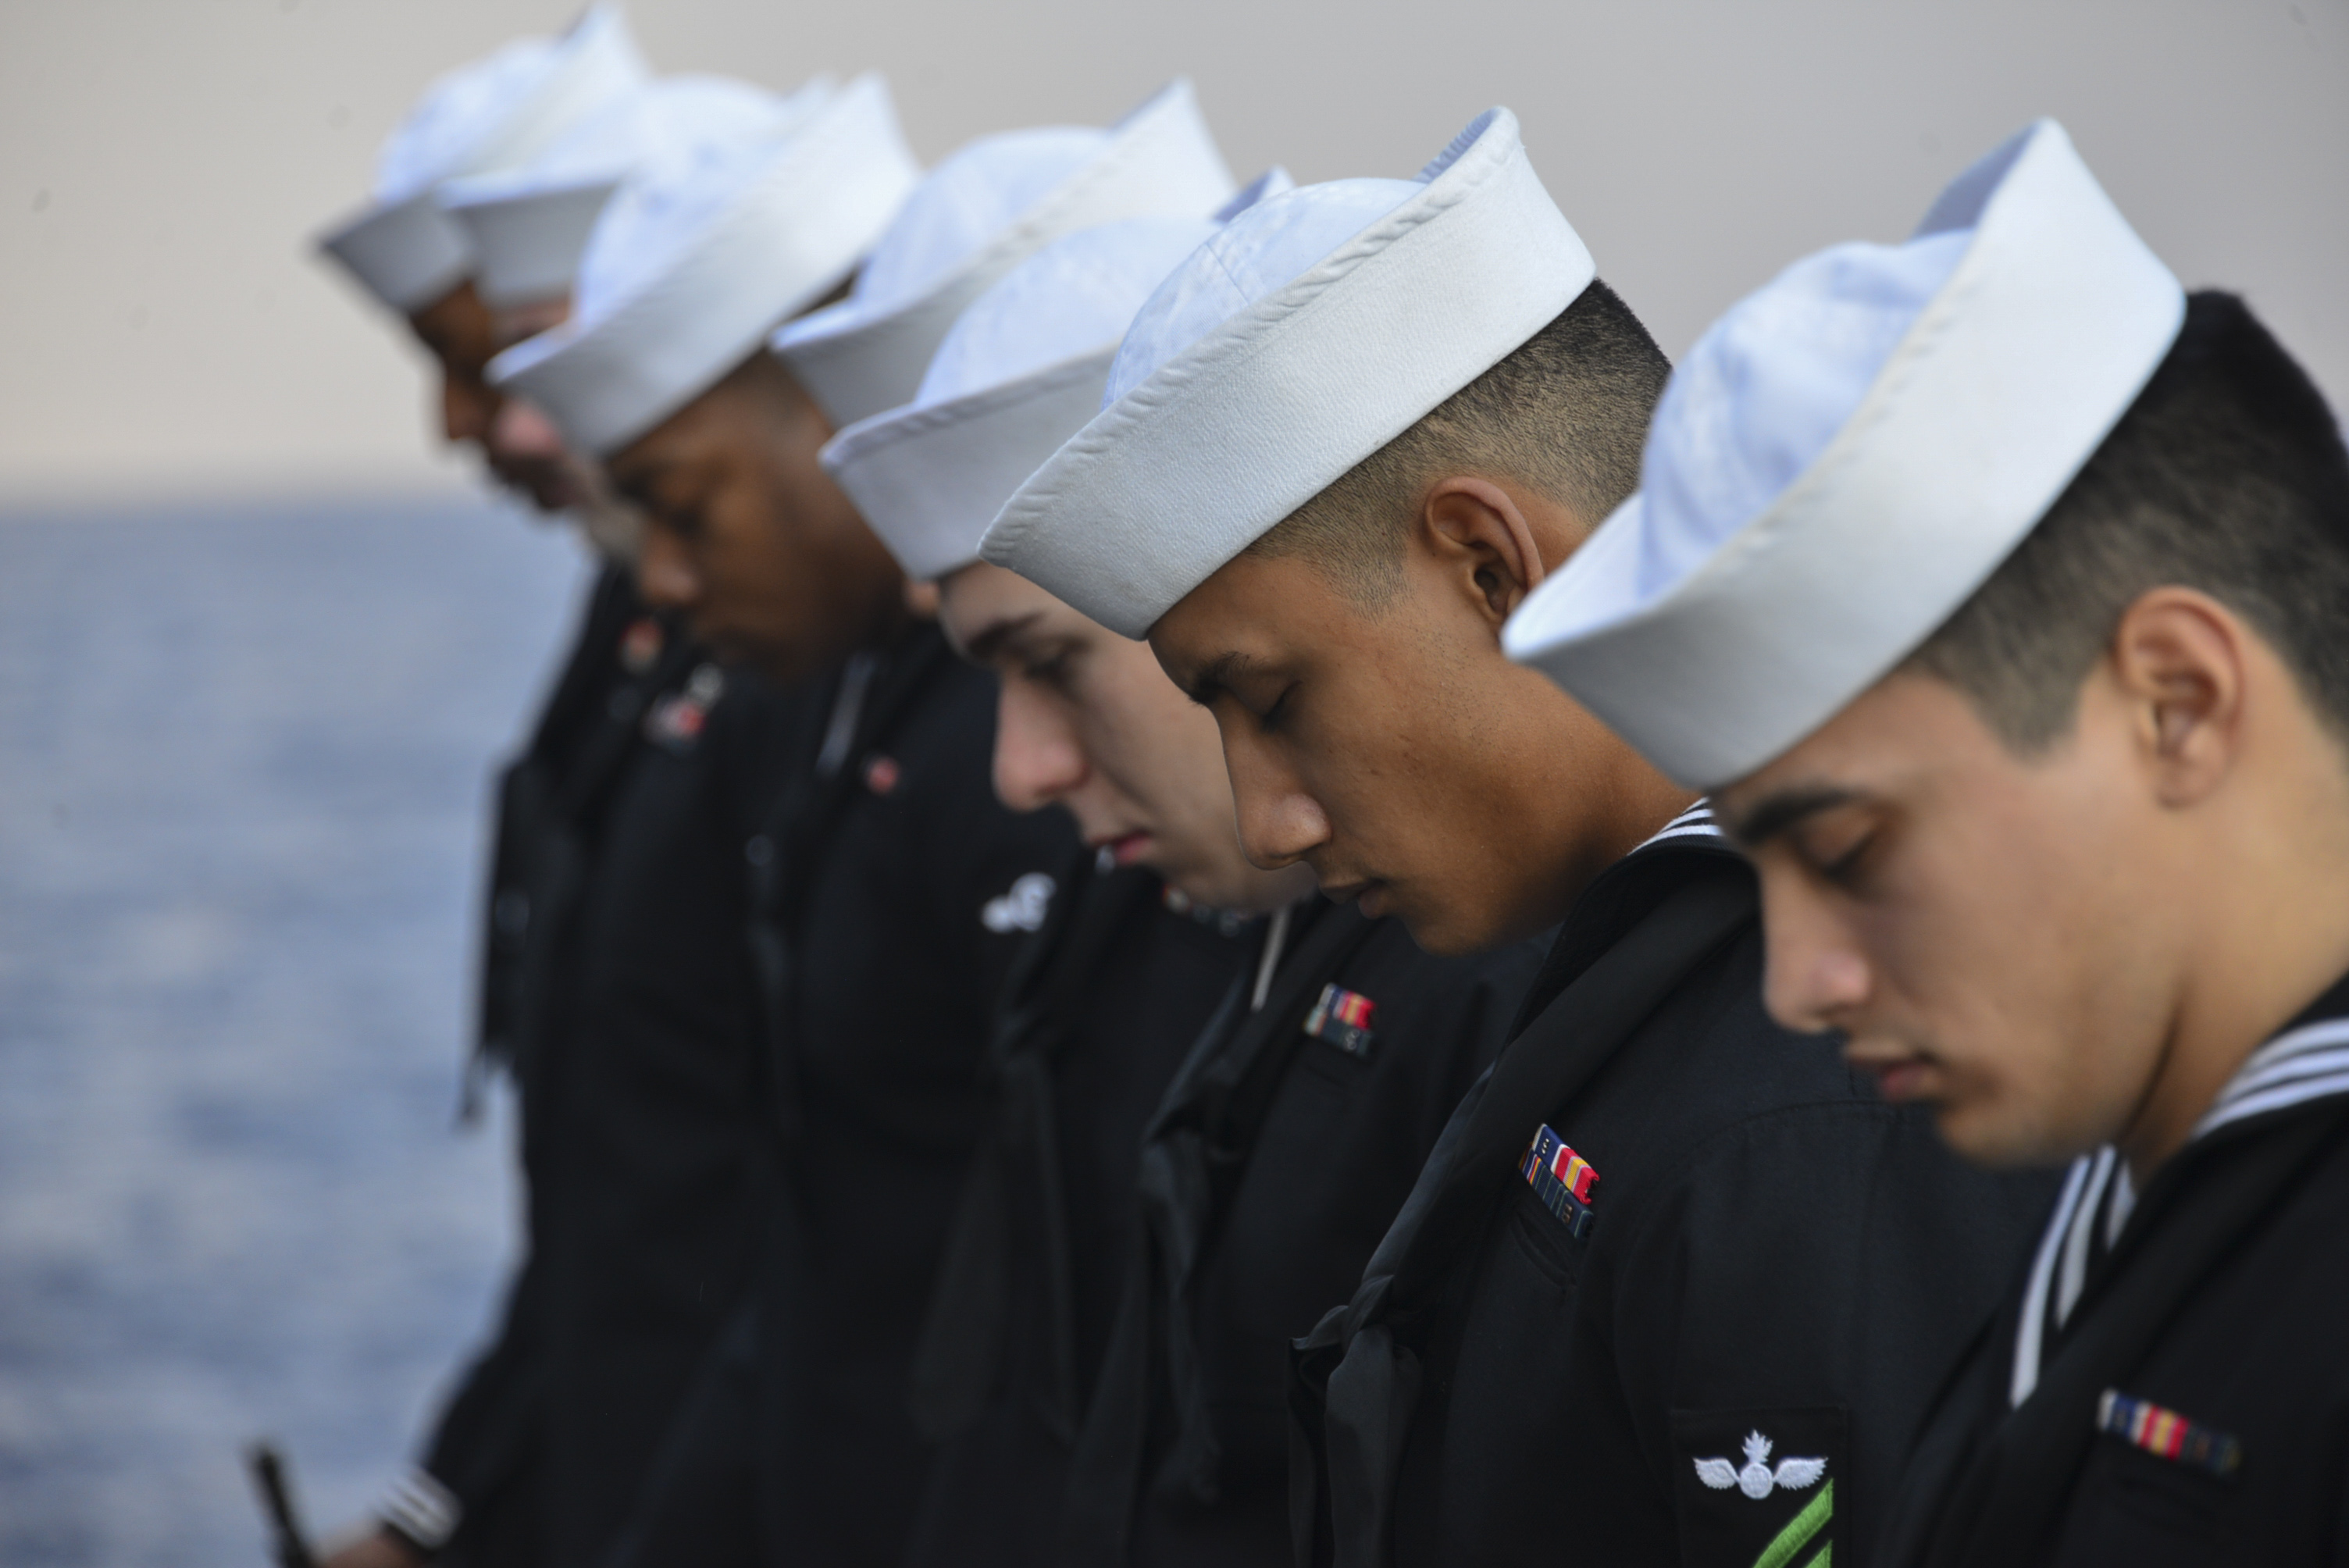 Sailors part of the rifle detail bow their heads in prayer during a Burial at Sea ceremony held on the starboard aircraft elevator of the amphibious assault ship USS Iwo Jima. U.S. Navy photo by Hunter S. Harwell